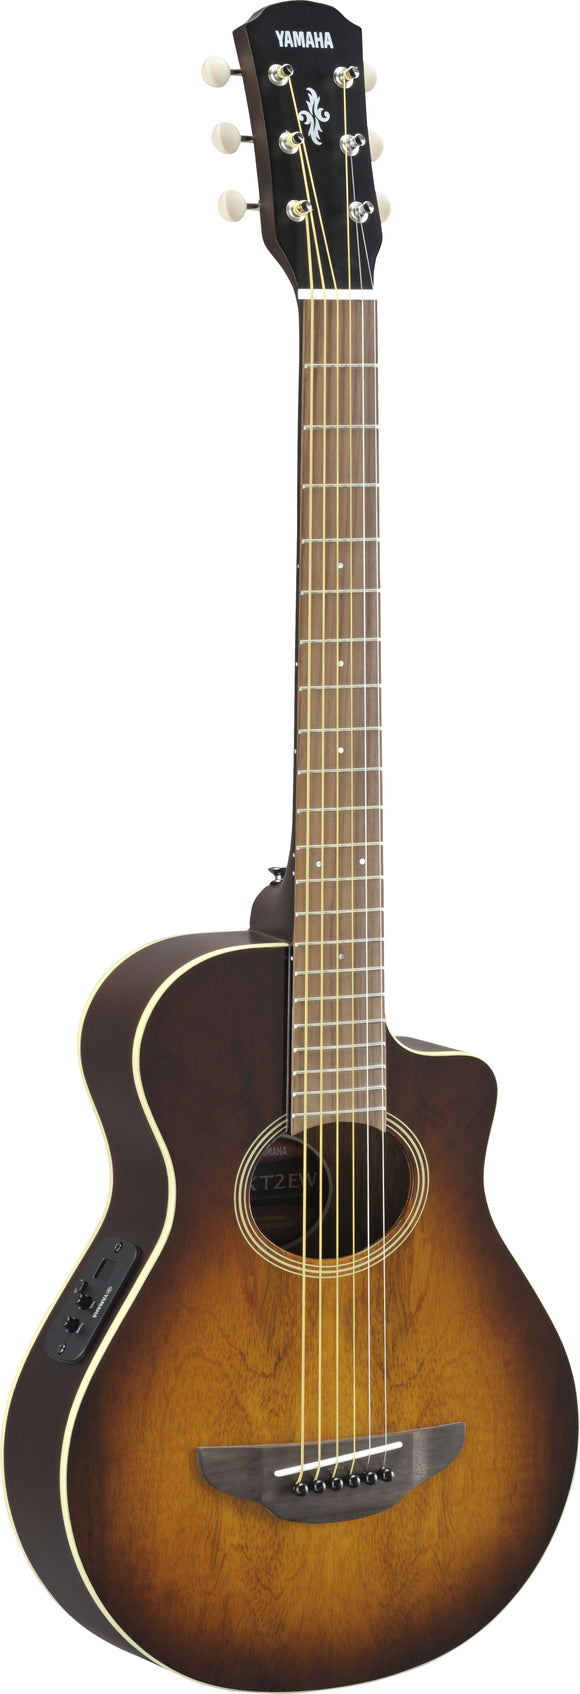 Yamaha APXT2EW 3/4 Size Thinline Acoustic/Electric Guitar - Tobacco Brown Sunburst